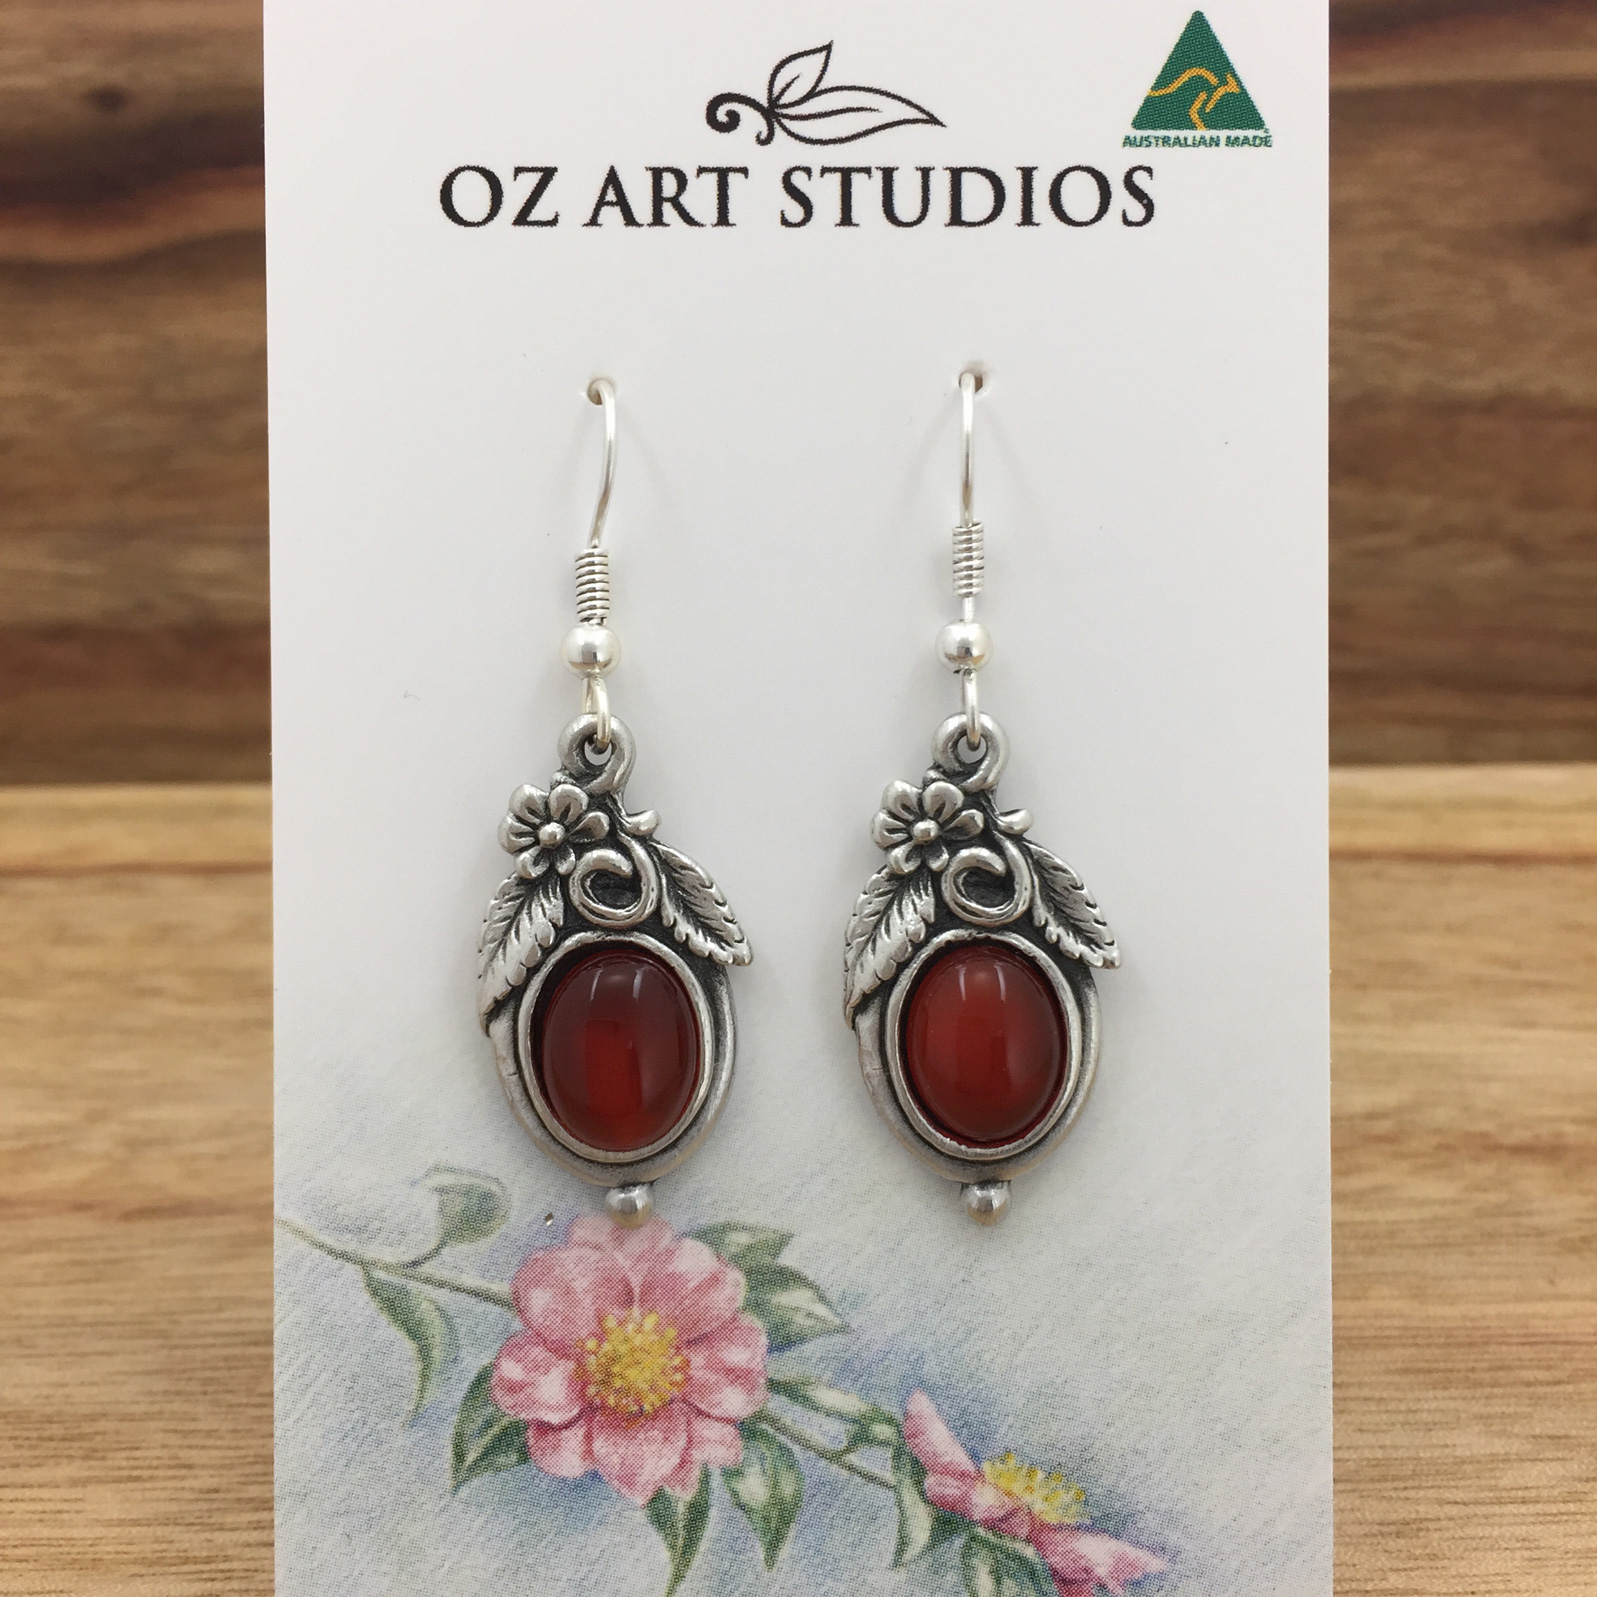 jewellery art nature product carnelian home oz gemstone earrings studios style